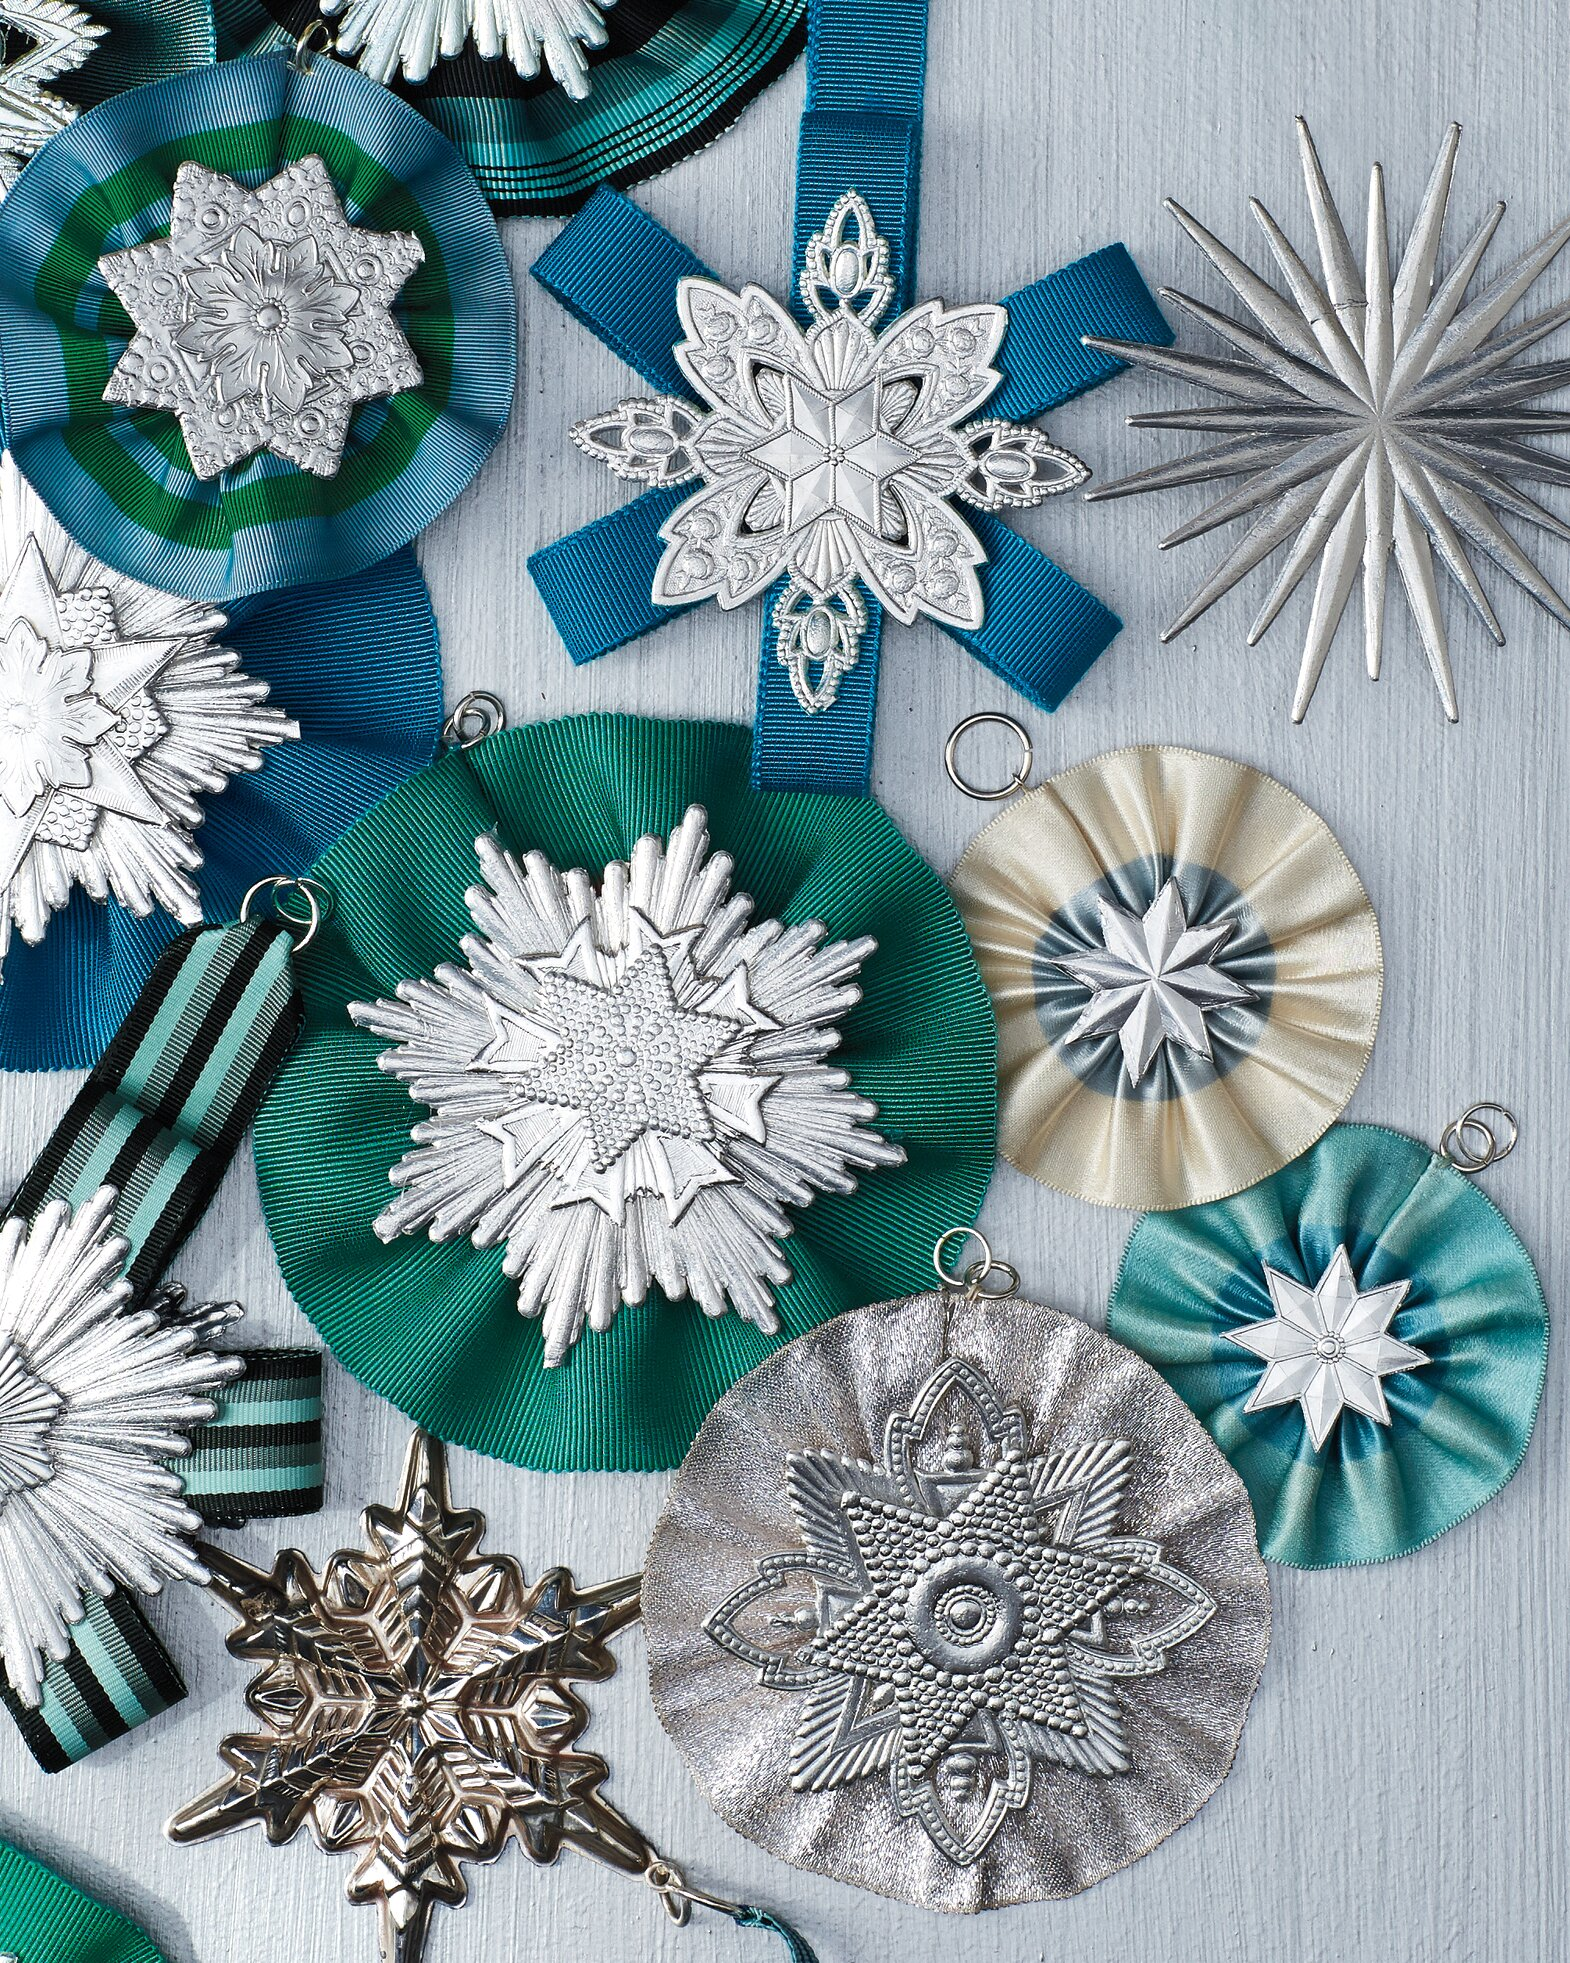 24 Of Our Most Memorable Diy Christmas Ornaments Martha